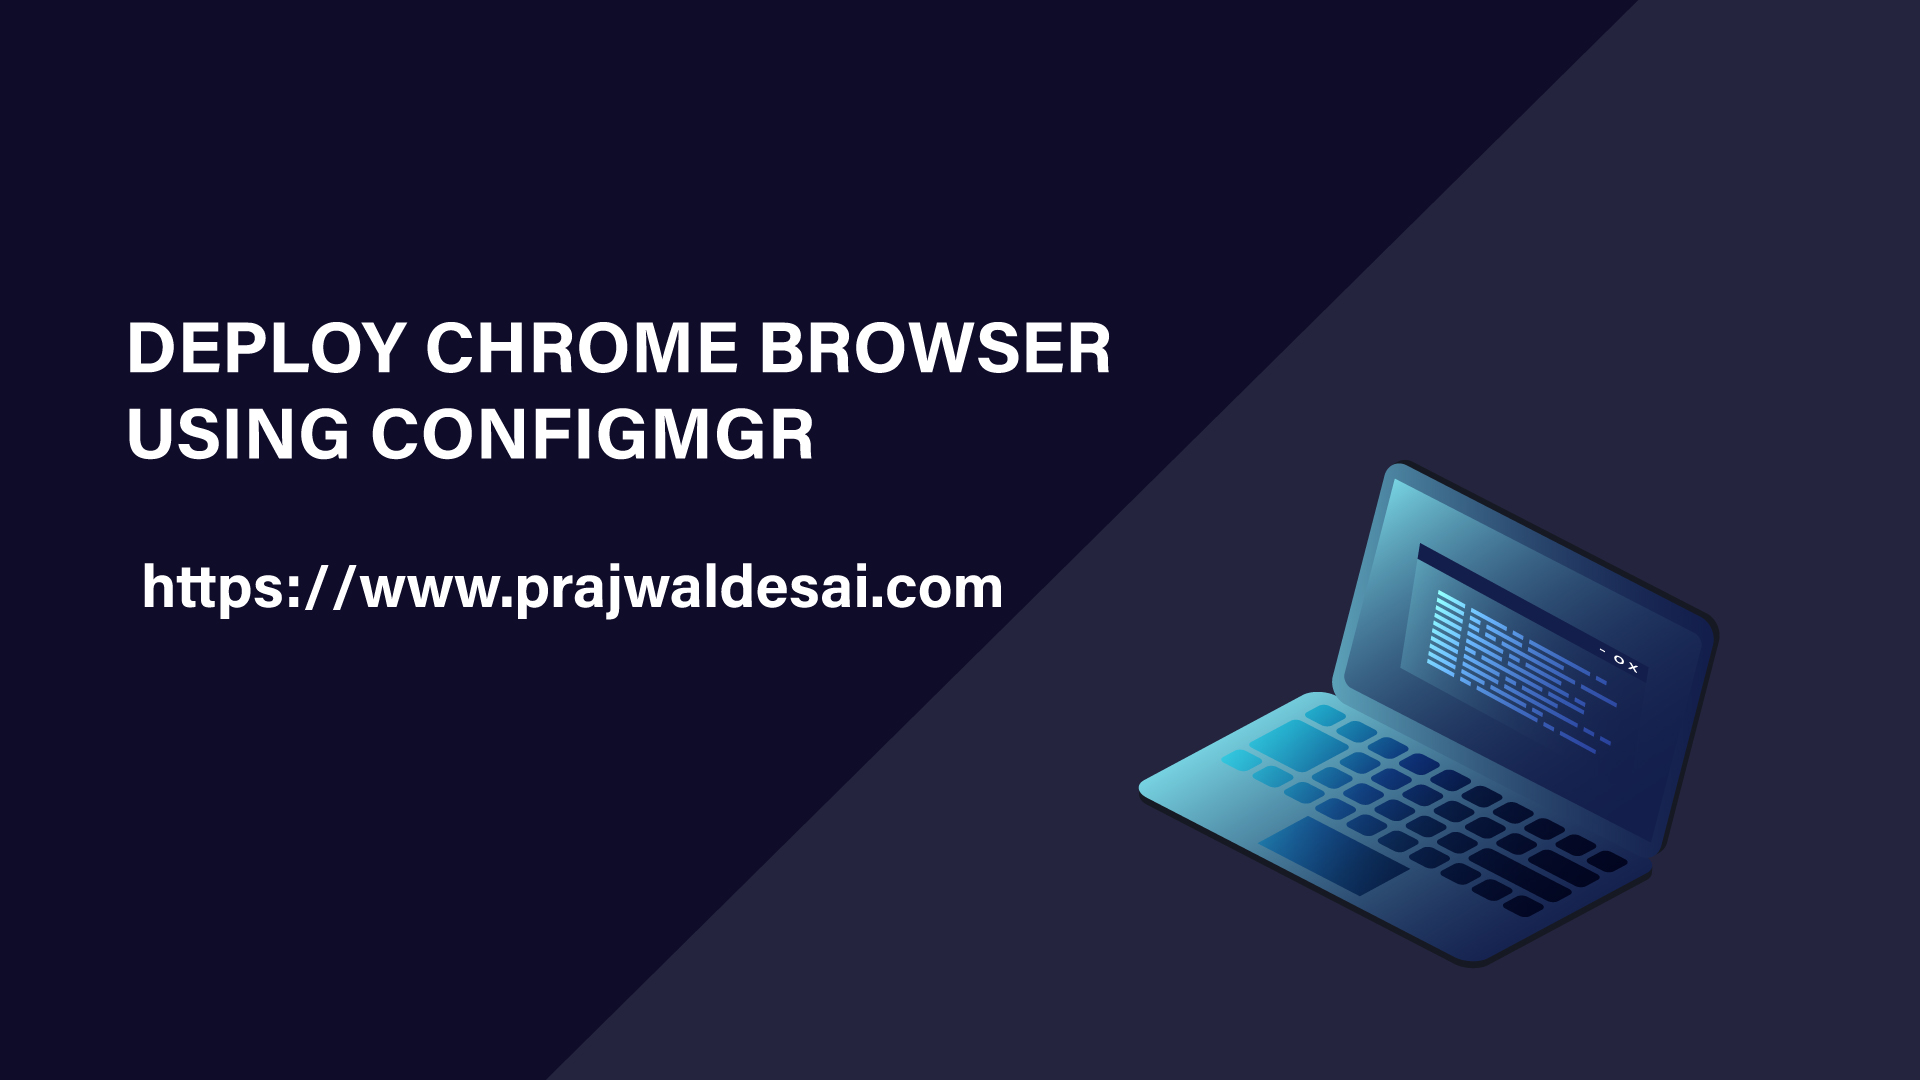 Deploy Chrome Browser Using ConfigMgr